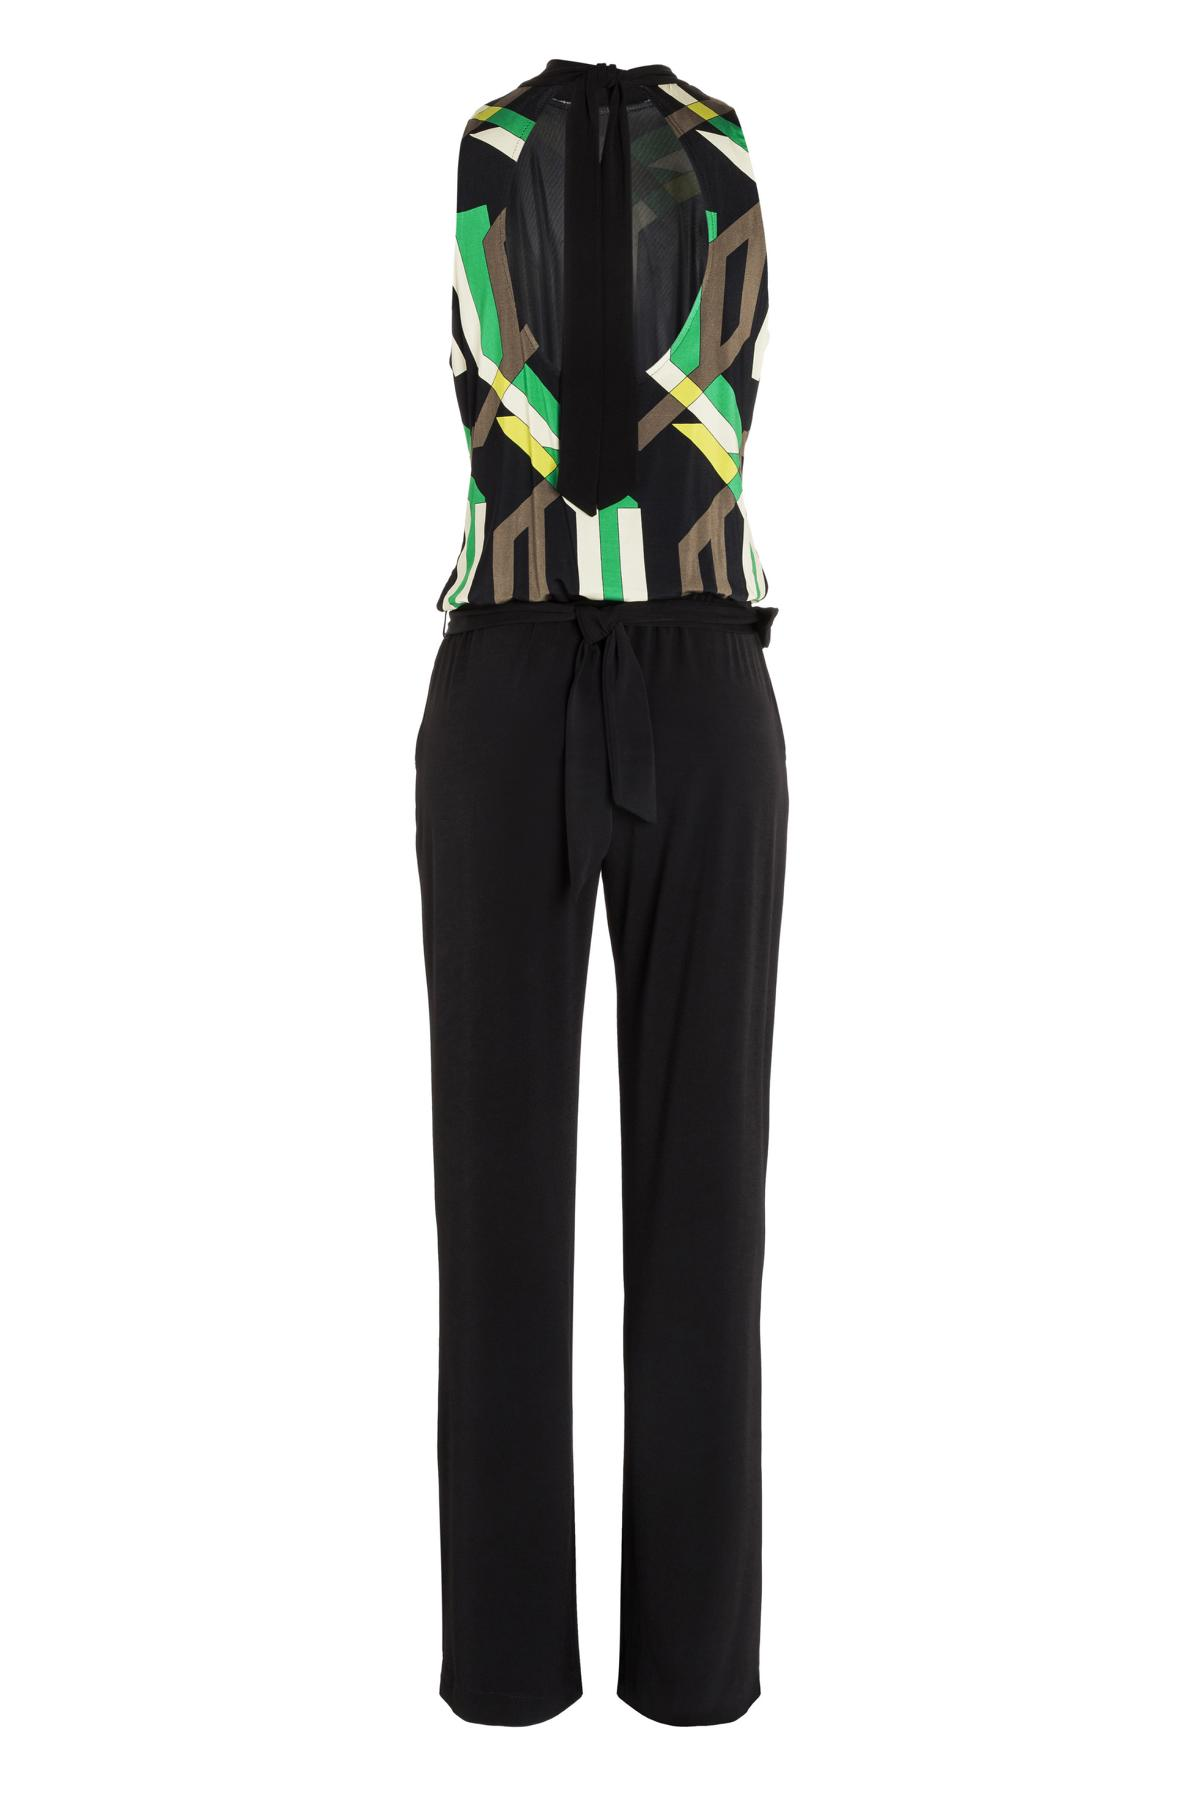 PRODUCT_PICTURE_PRE_7Ana Alcazar Jumpsuit Sepstyne PRODUCT_PICTURE_SUF_7